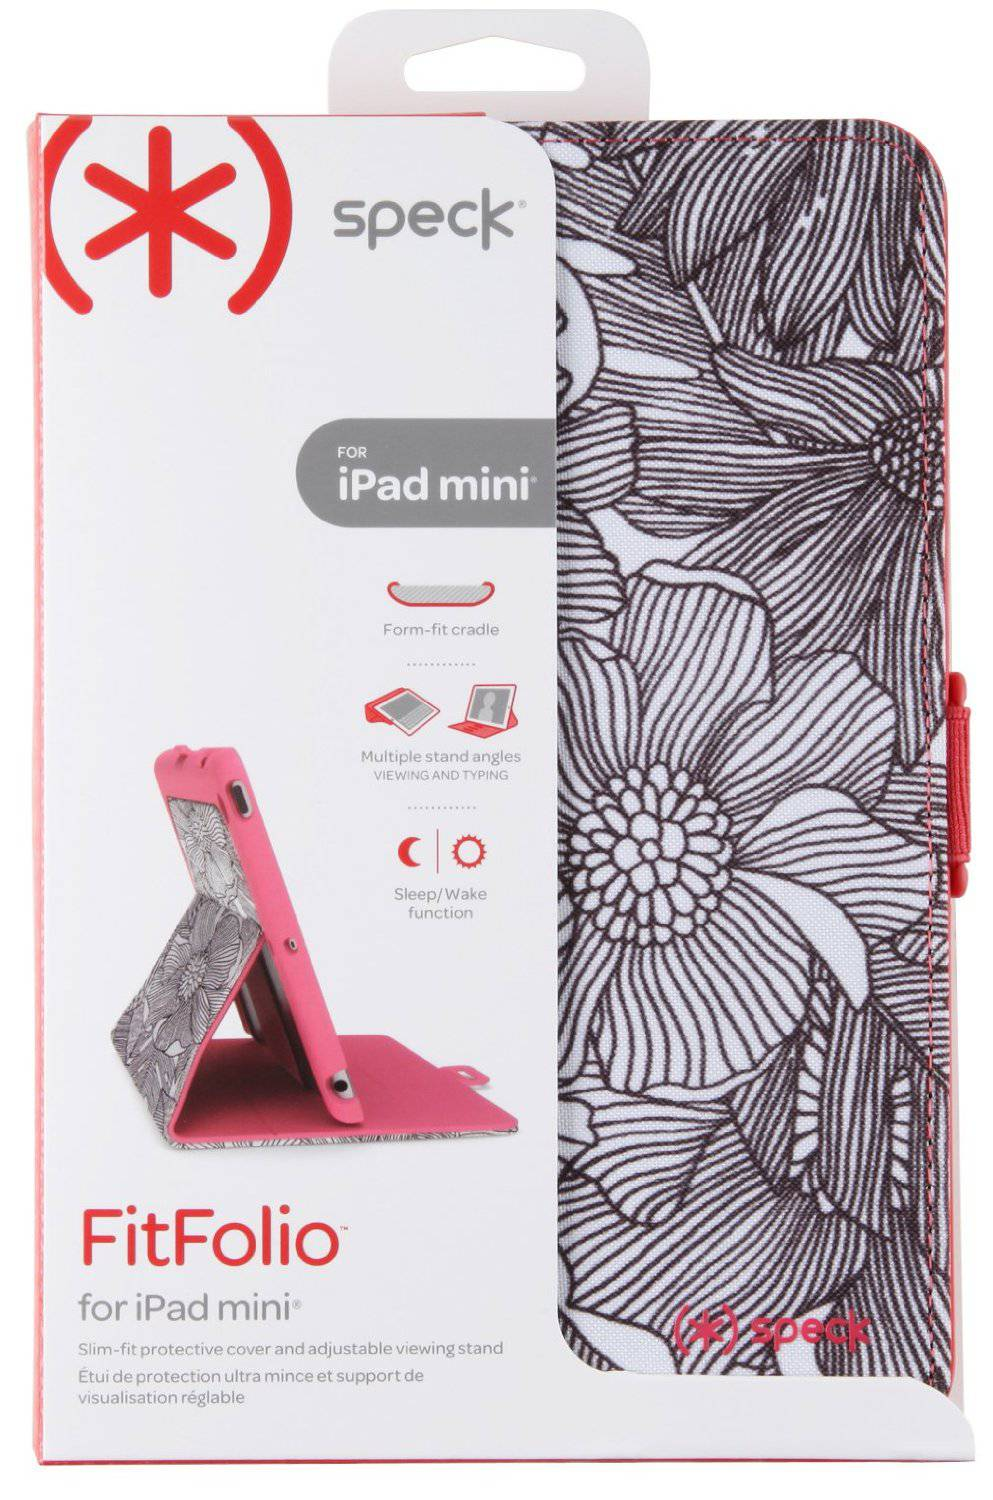 online store 179d2 e6726 Details about New OEM Speck FitFolio FreshBloom Coral Pink Case For iPad  Mini 1/2/3